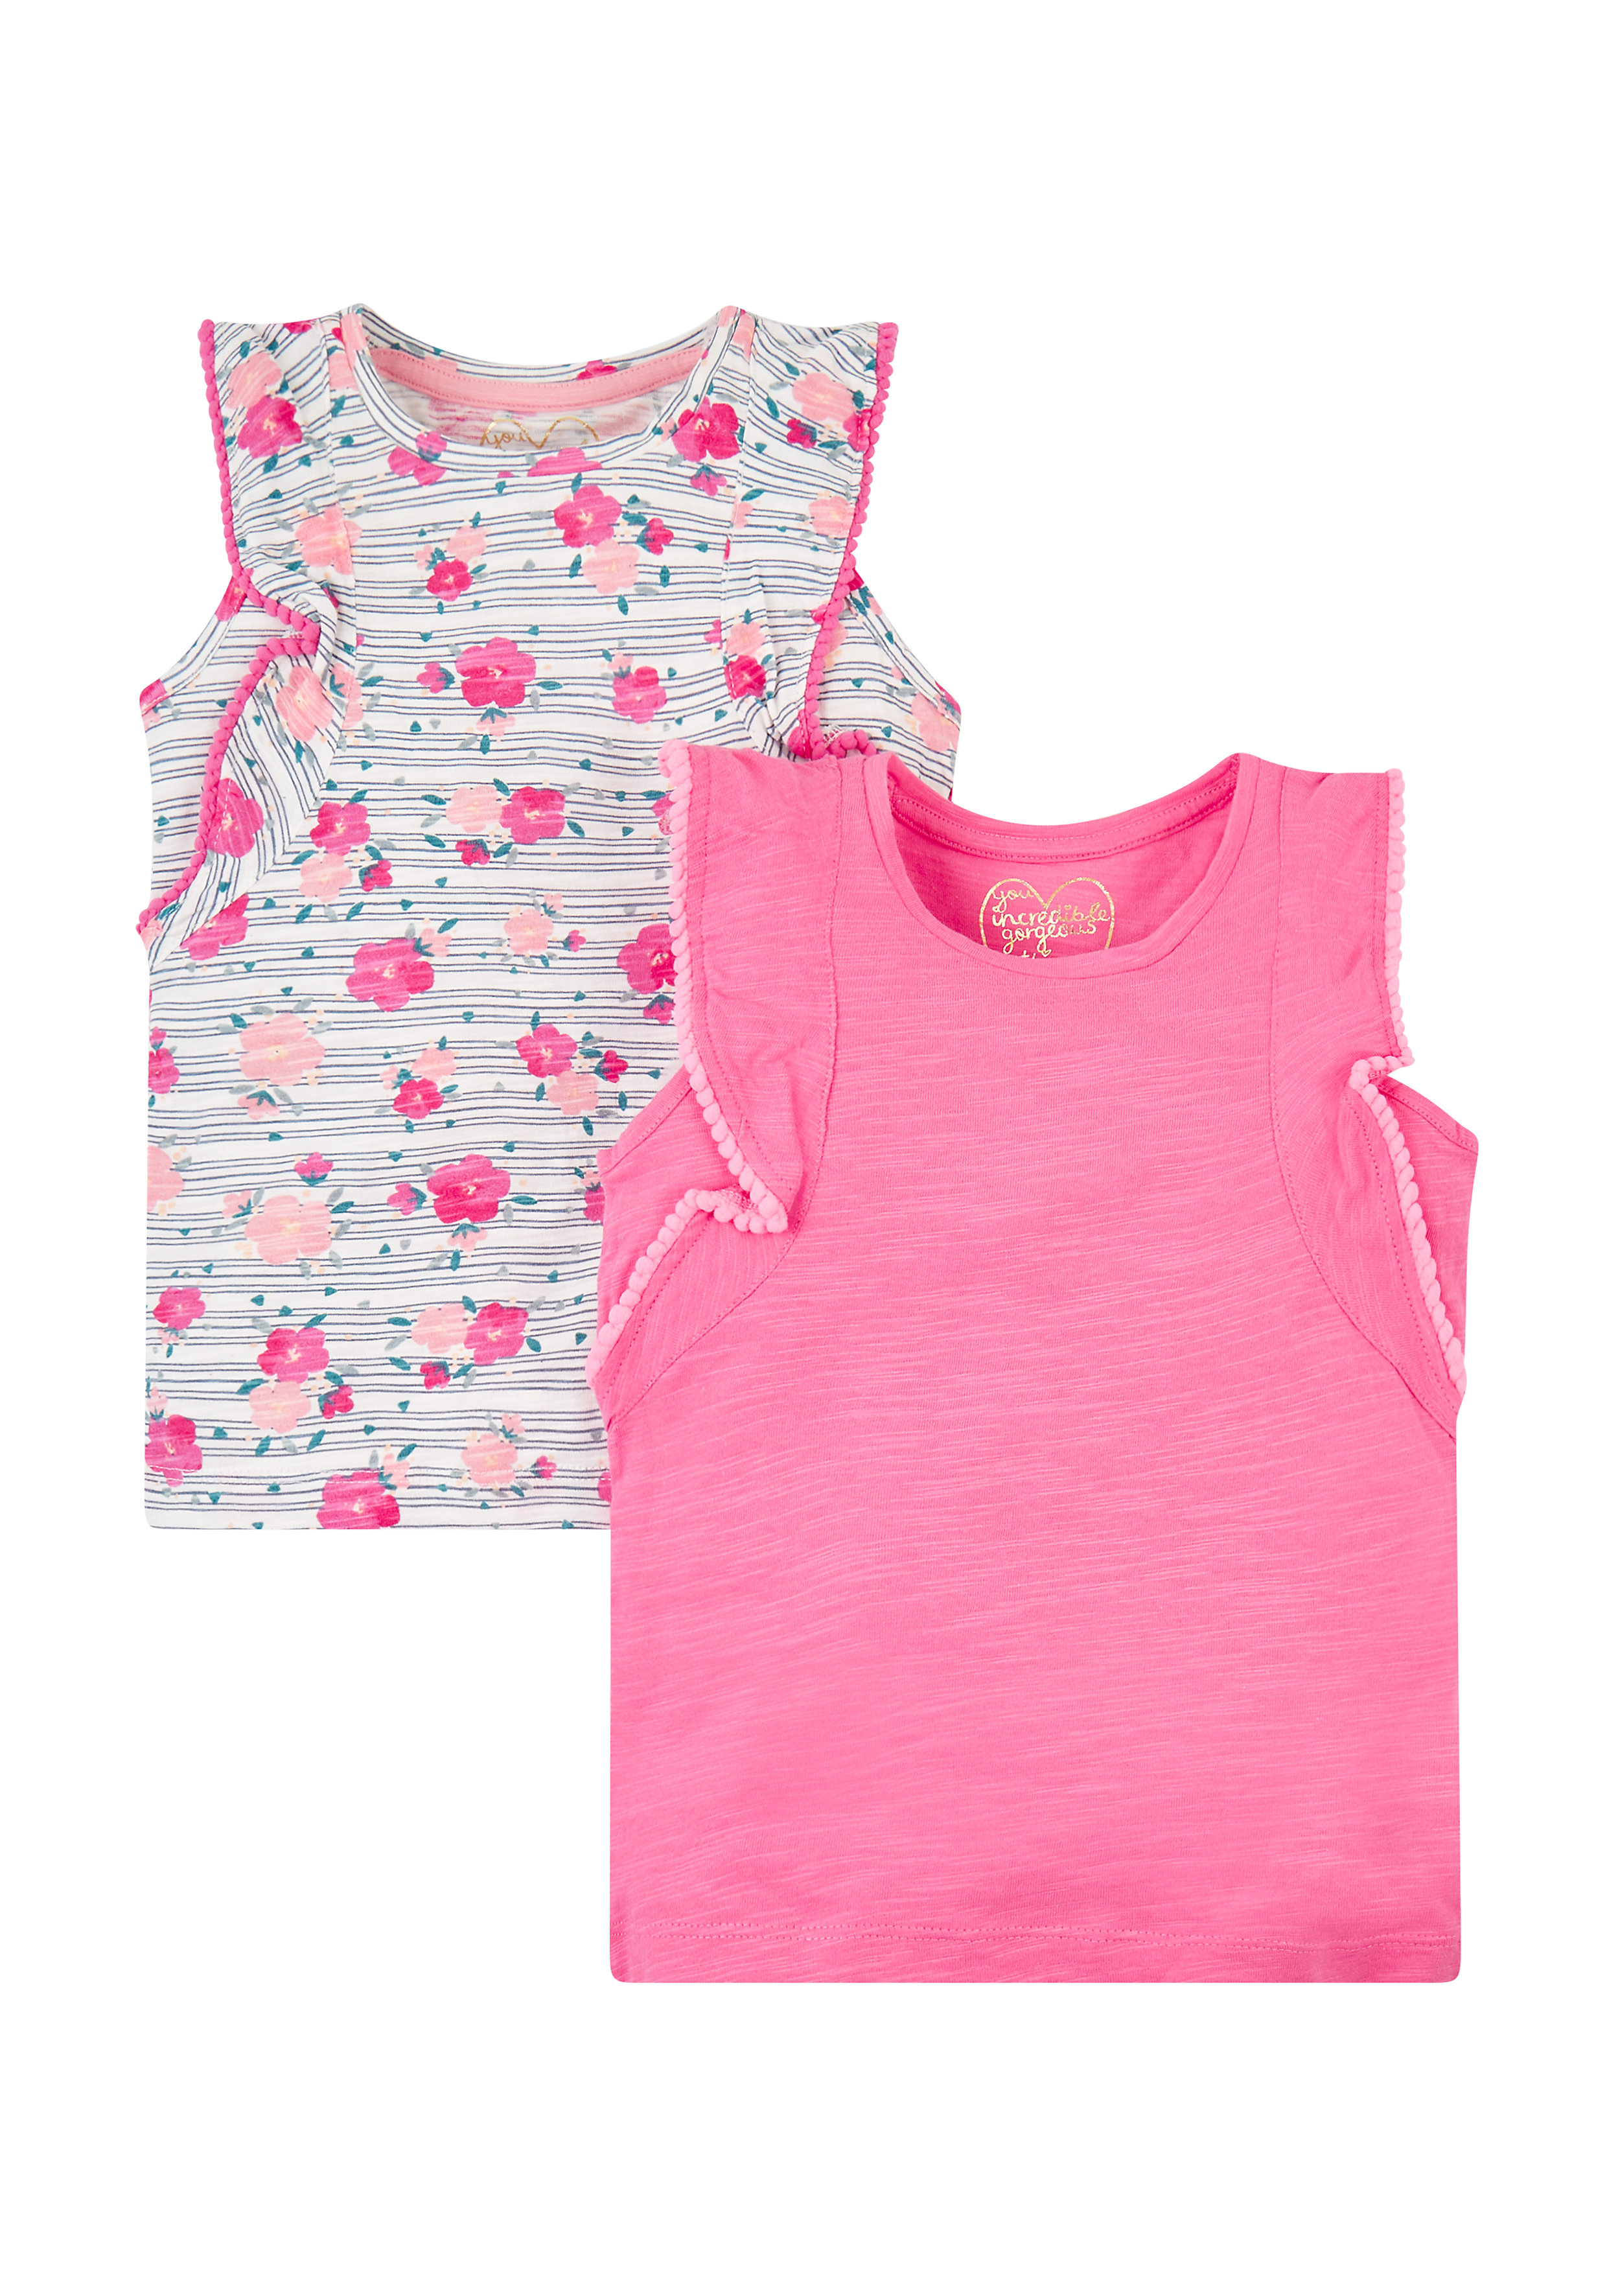 Mothercare | Pink And Floral Vests - 2 Pack